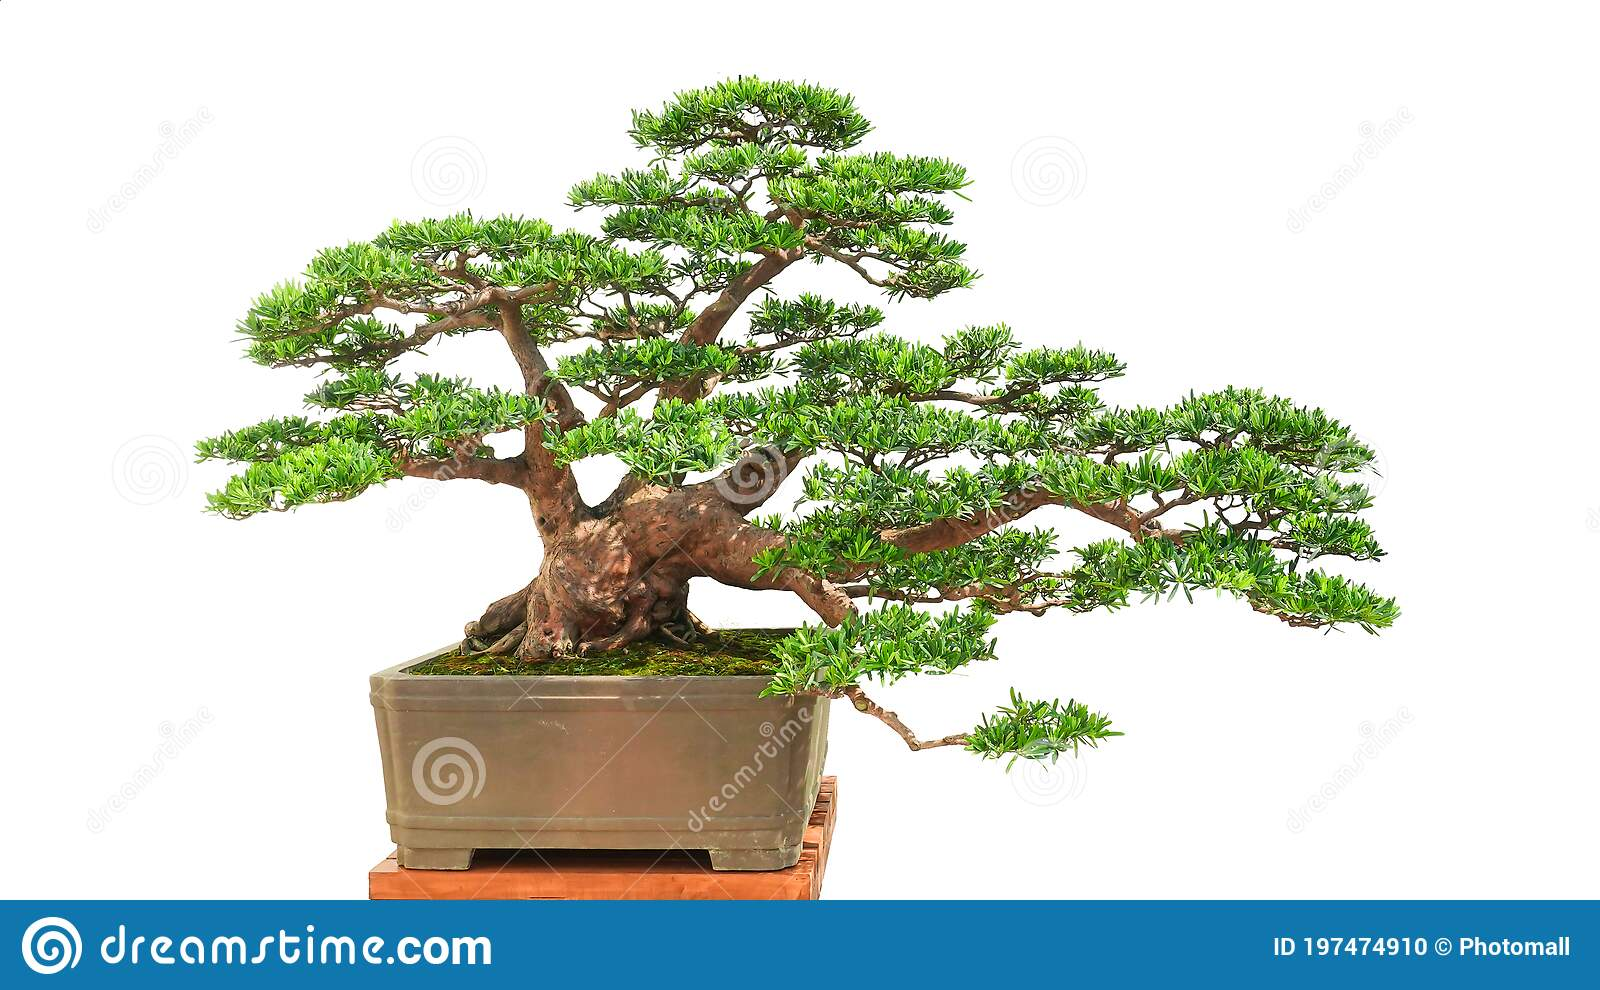 175 Bonsai Yew Photos Free Royalty Free Stock Photos From Dreamstime